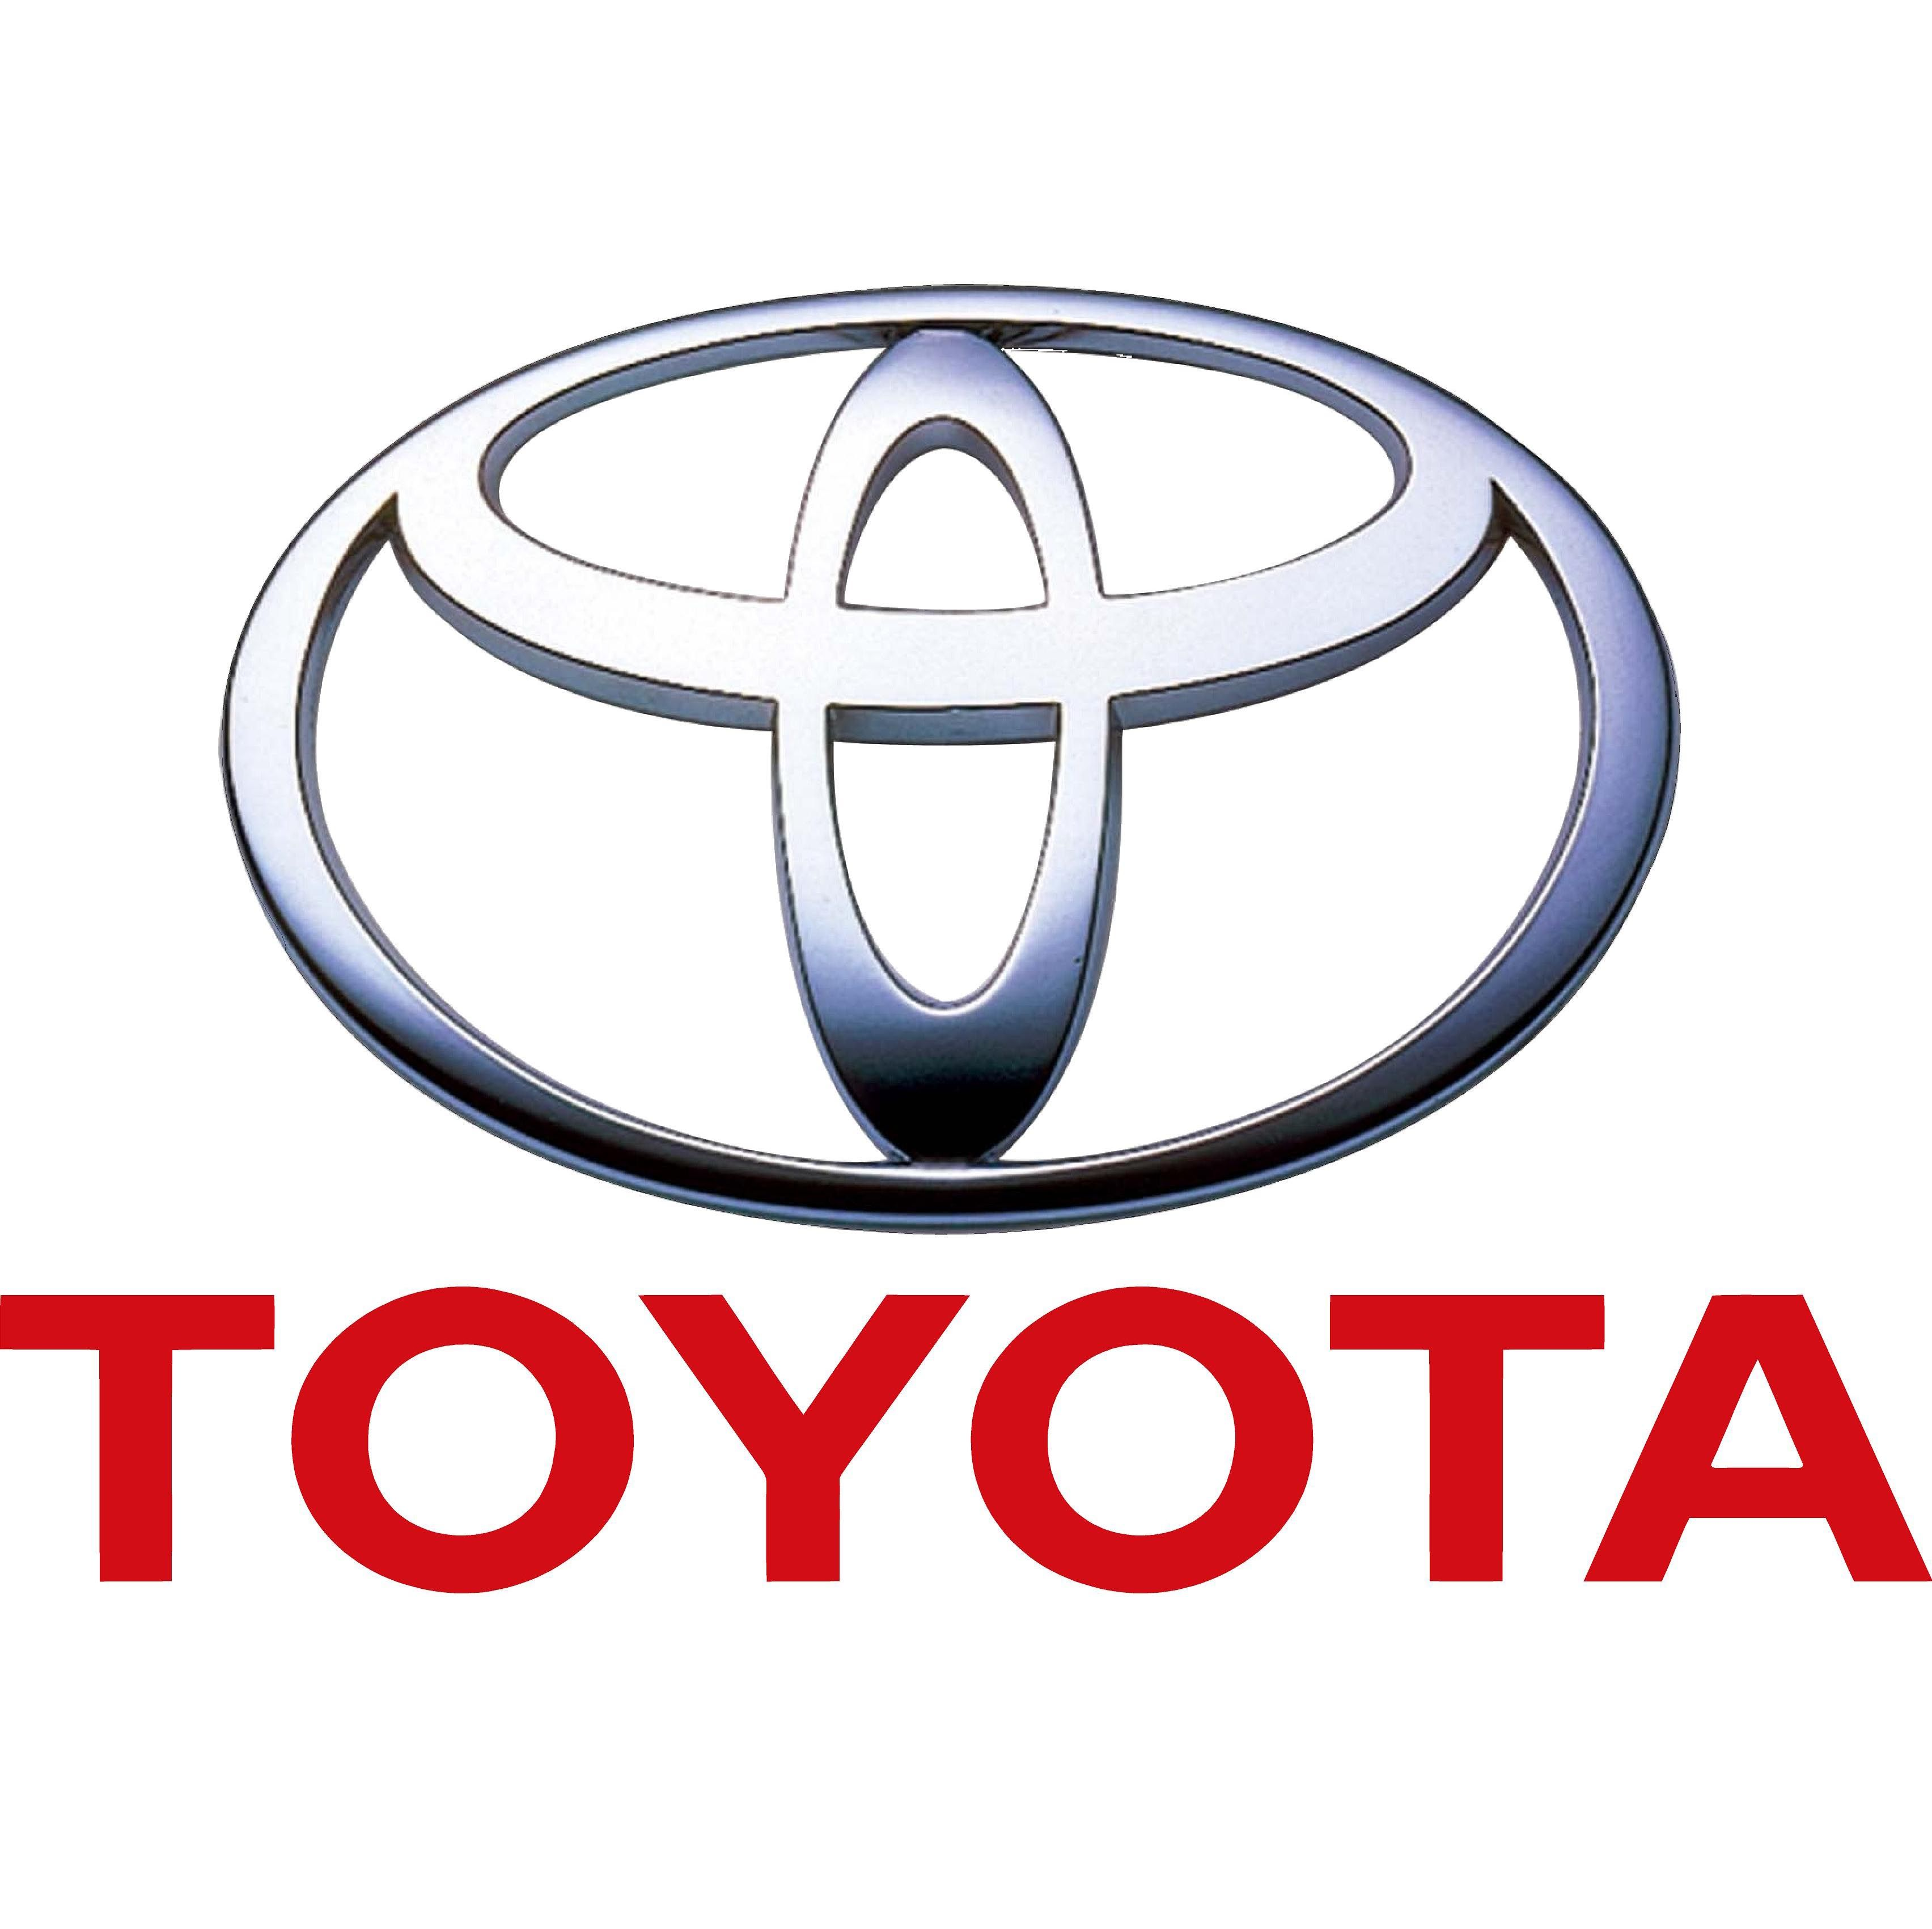 Toyota Logo Toyota Car Symbol Meaning And History Car Brand